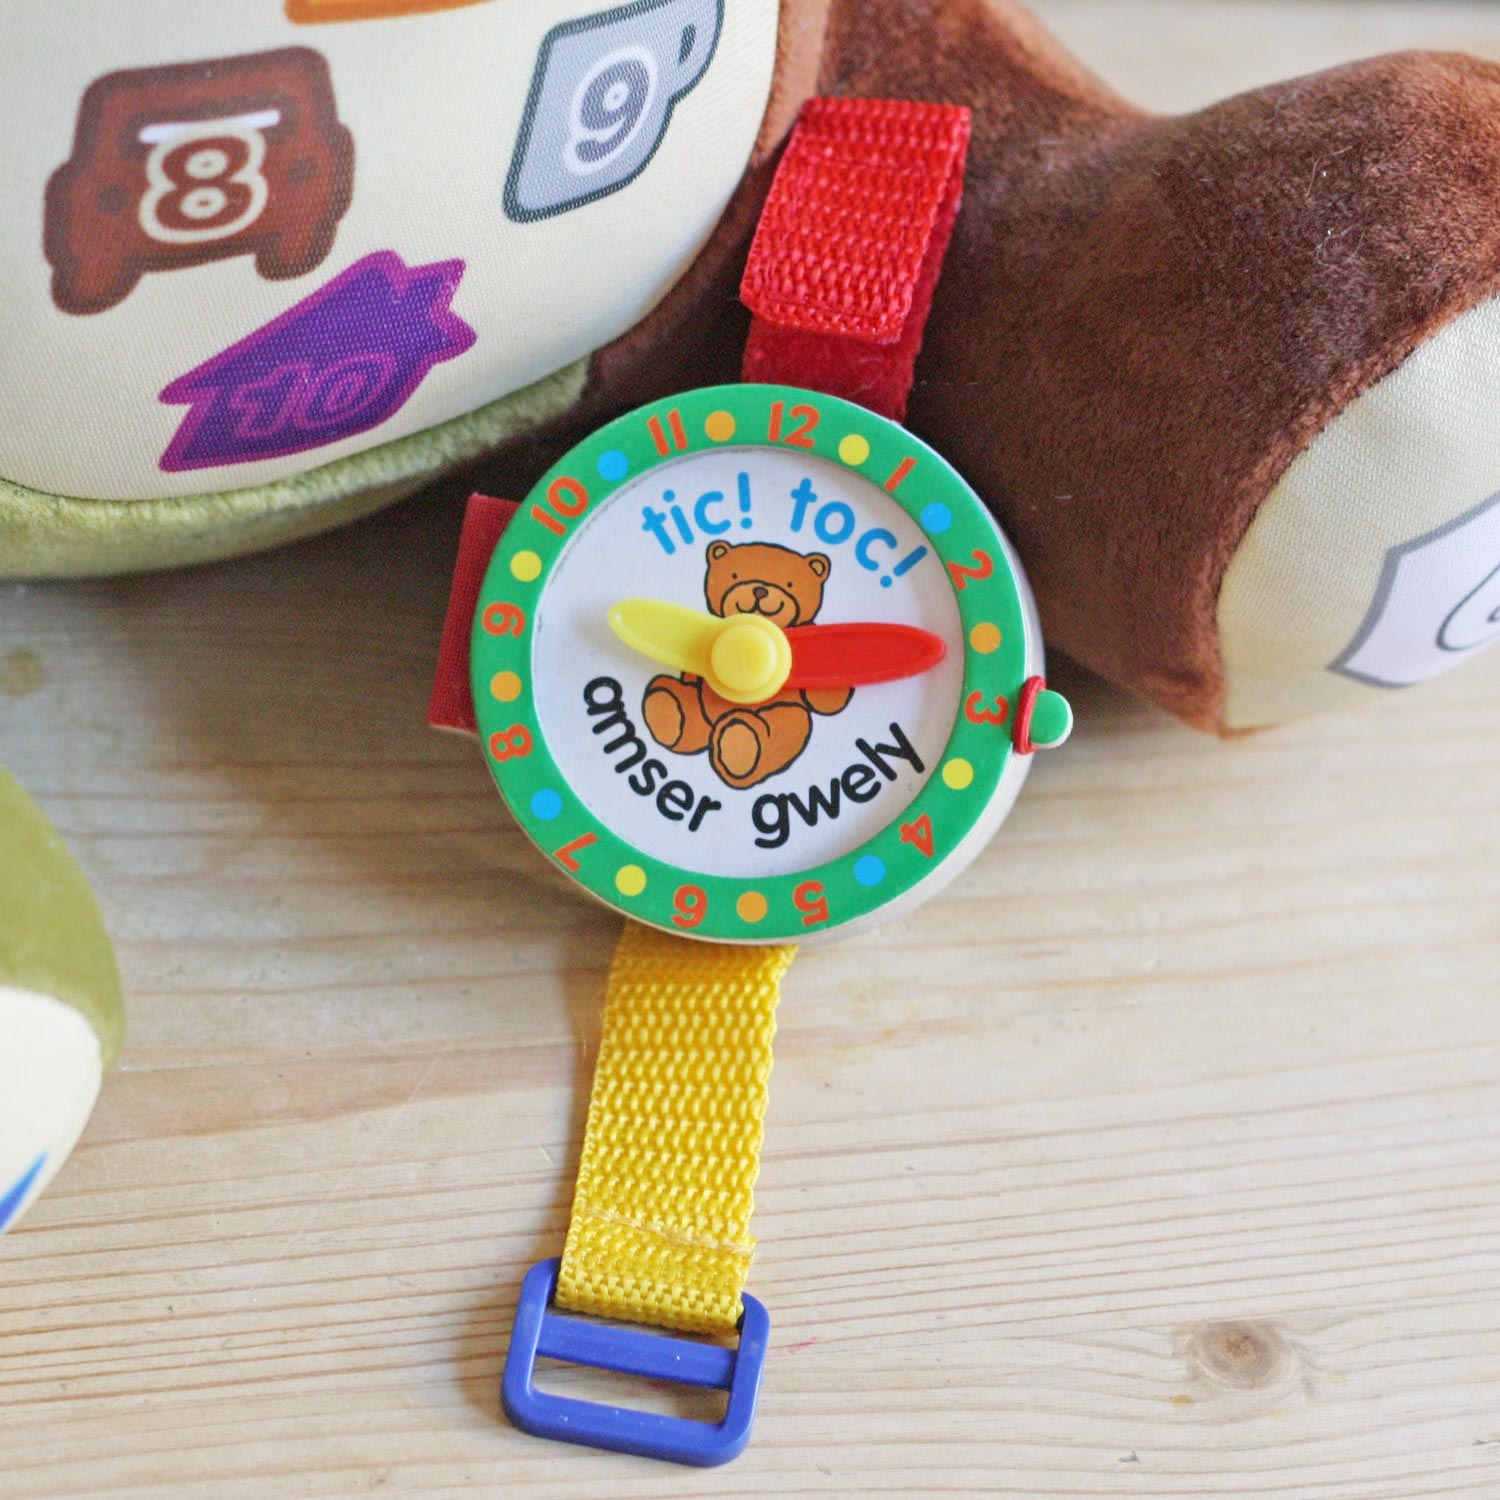 Tic Toc! Amser Gwely - Bed Time Watch Book